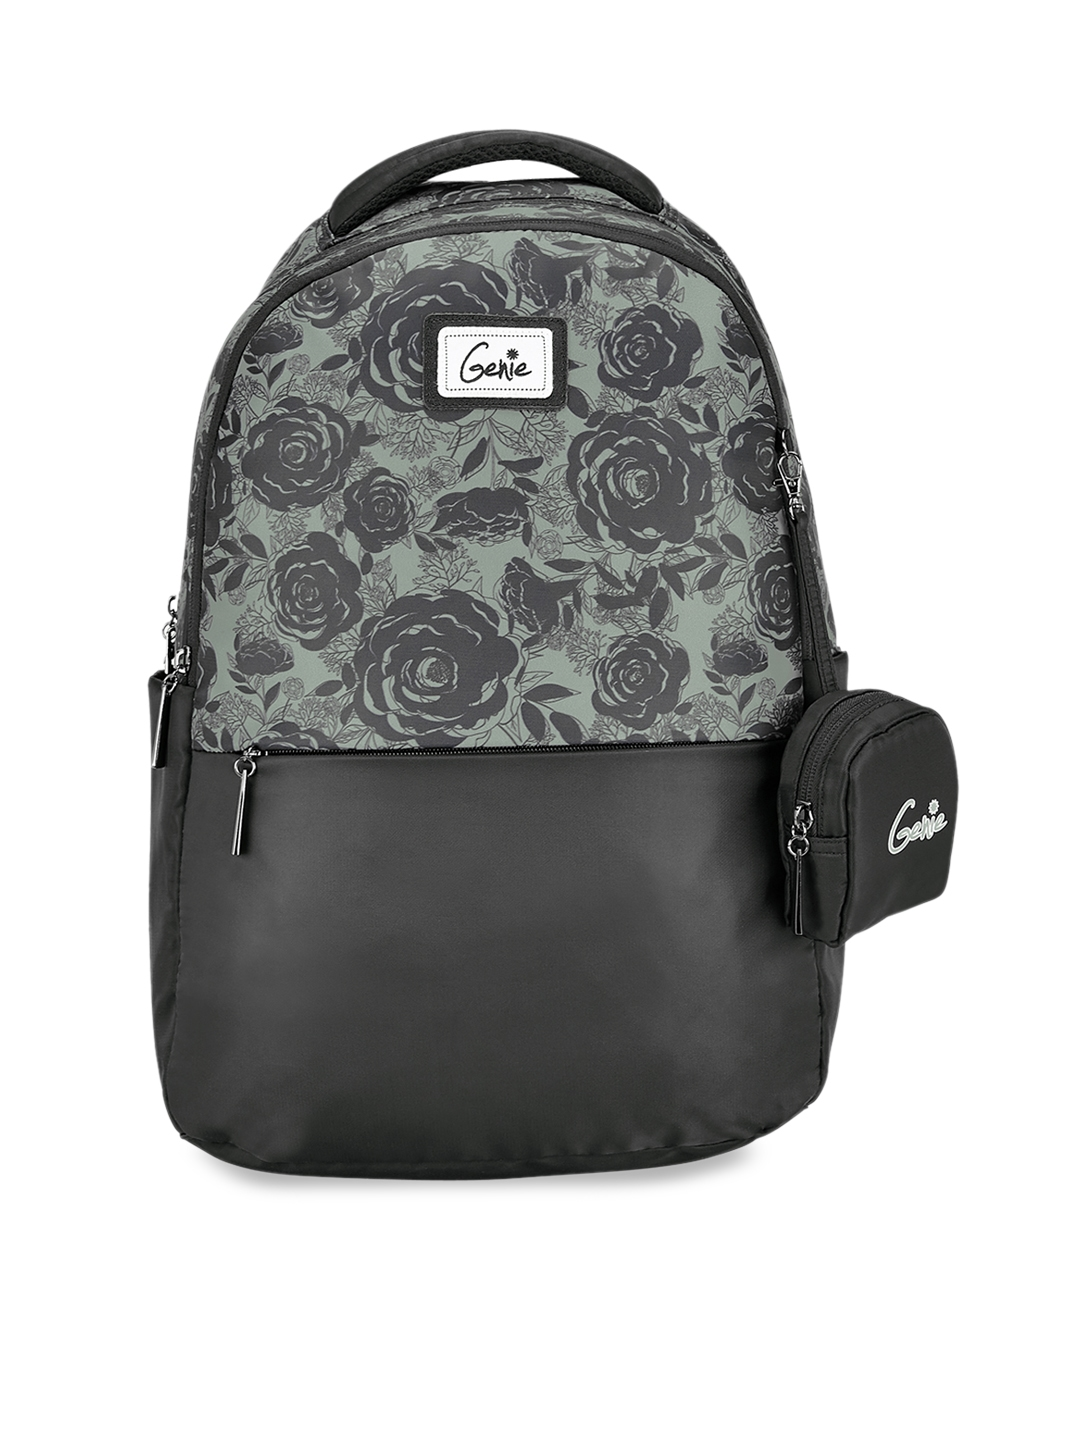 Genie Women Black   Grey Floral Print 17 inches Medium Laptop Backpack with Pouch